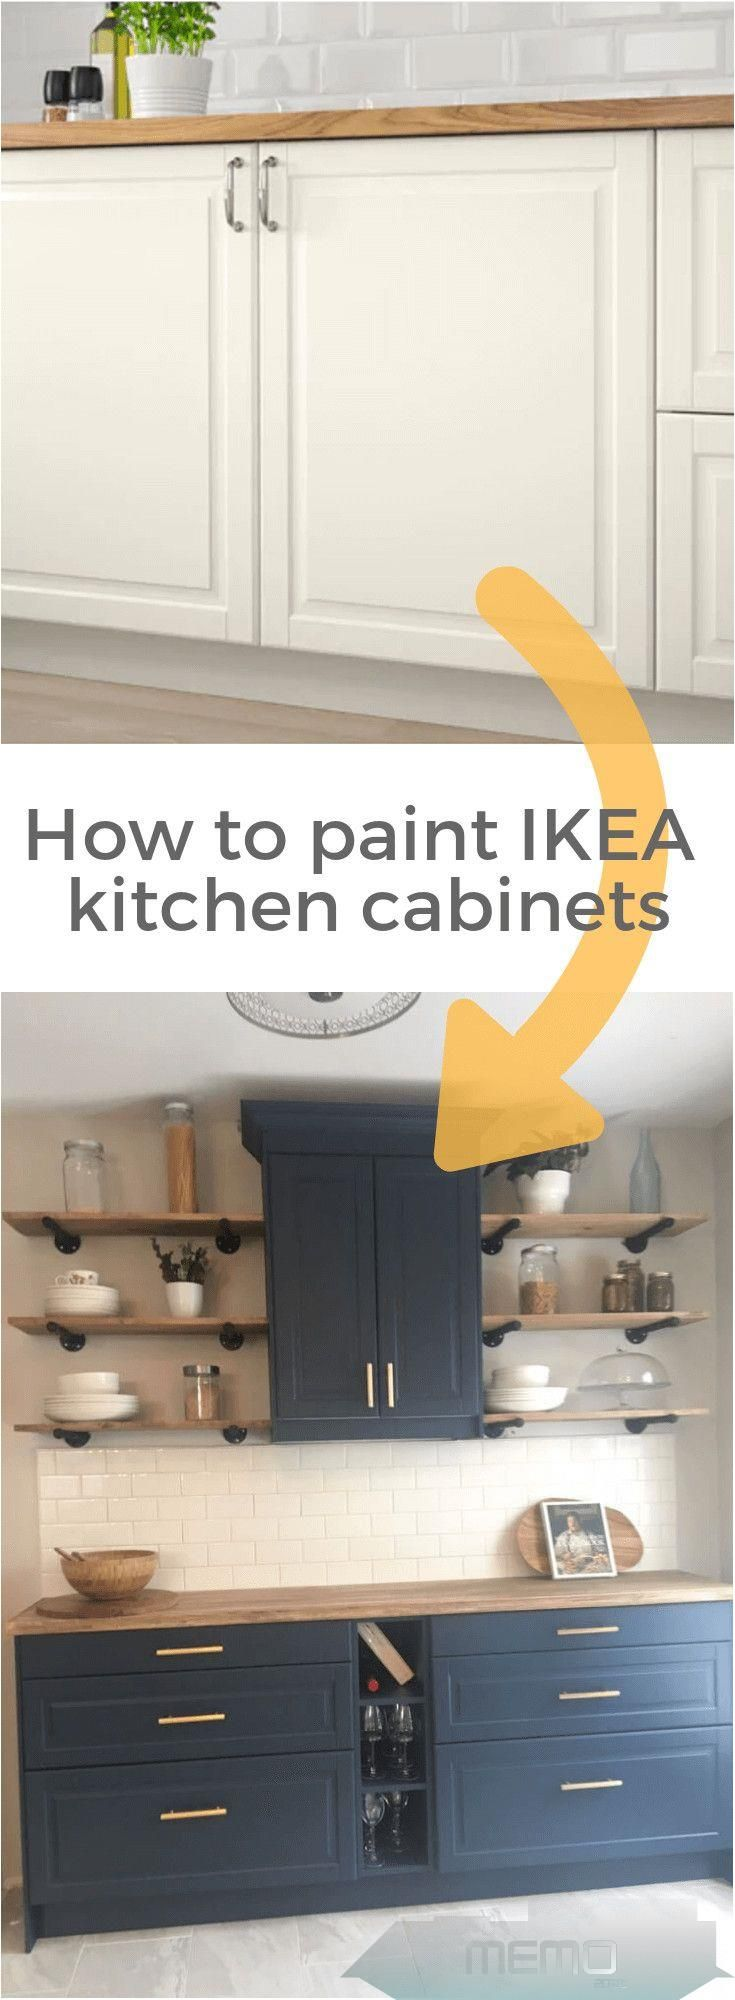 Mar 4 2019 Here S Our Ikea Painted Kitchen Cabinets For Our Custom Kitchen Nook On An Open Wall We Wan In 2020 Painting Kitchen Cabinets Kitchen Paint Kitchen Nook